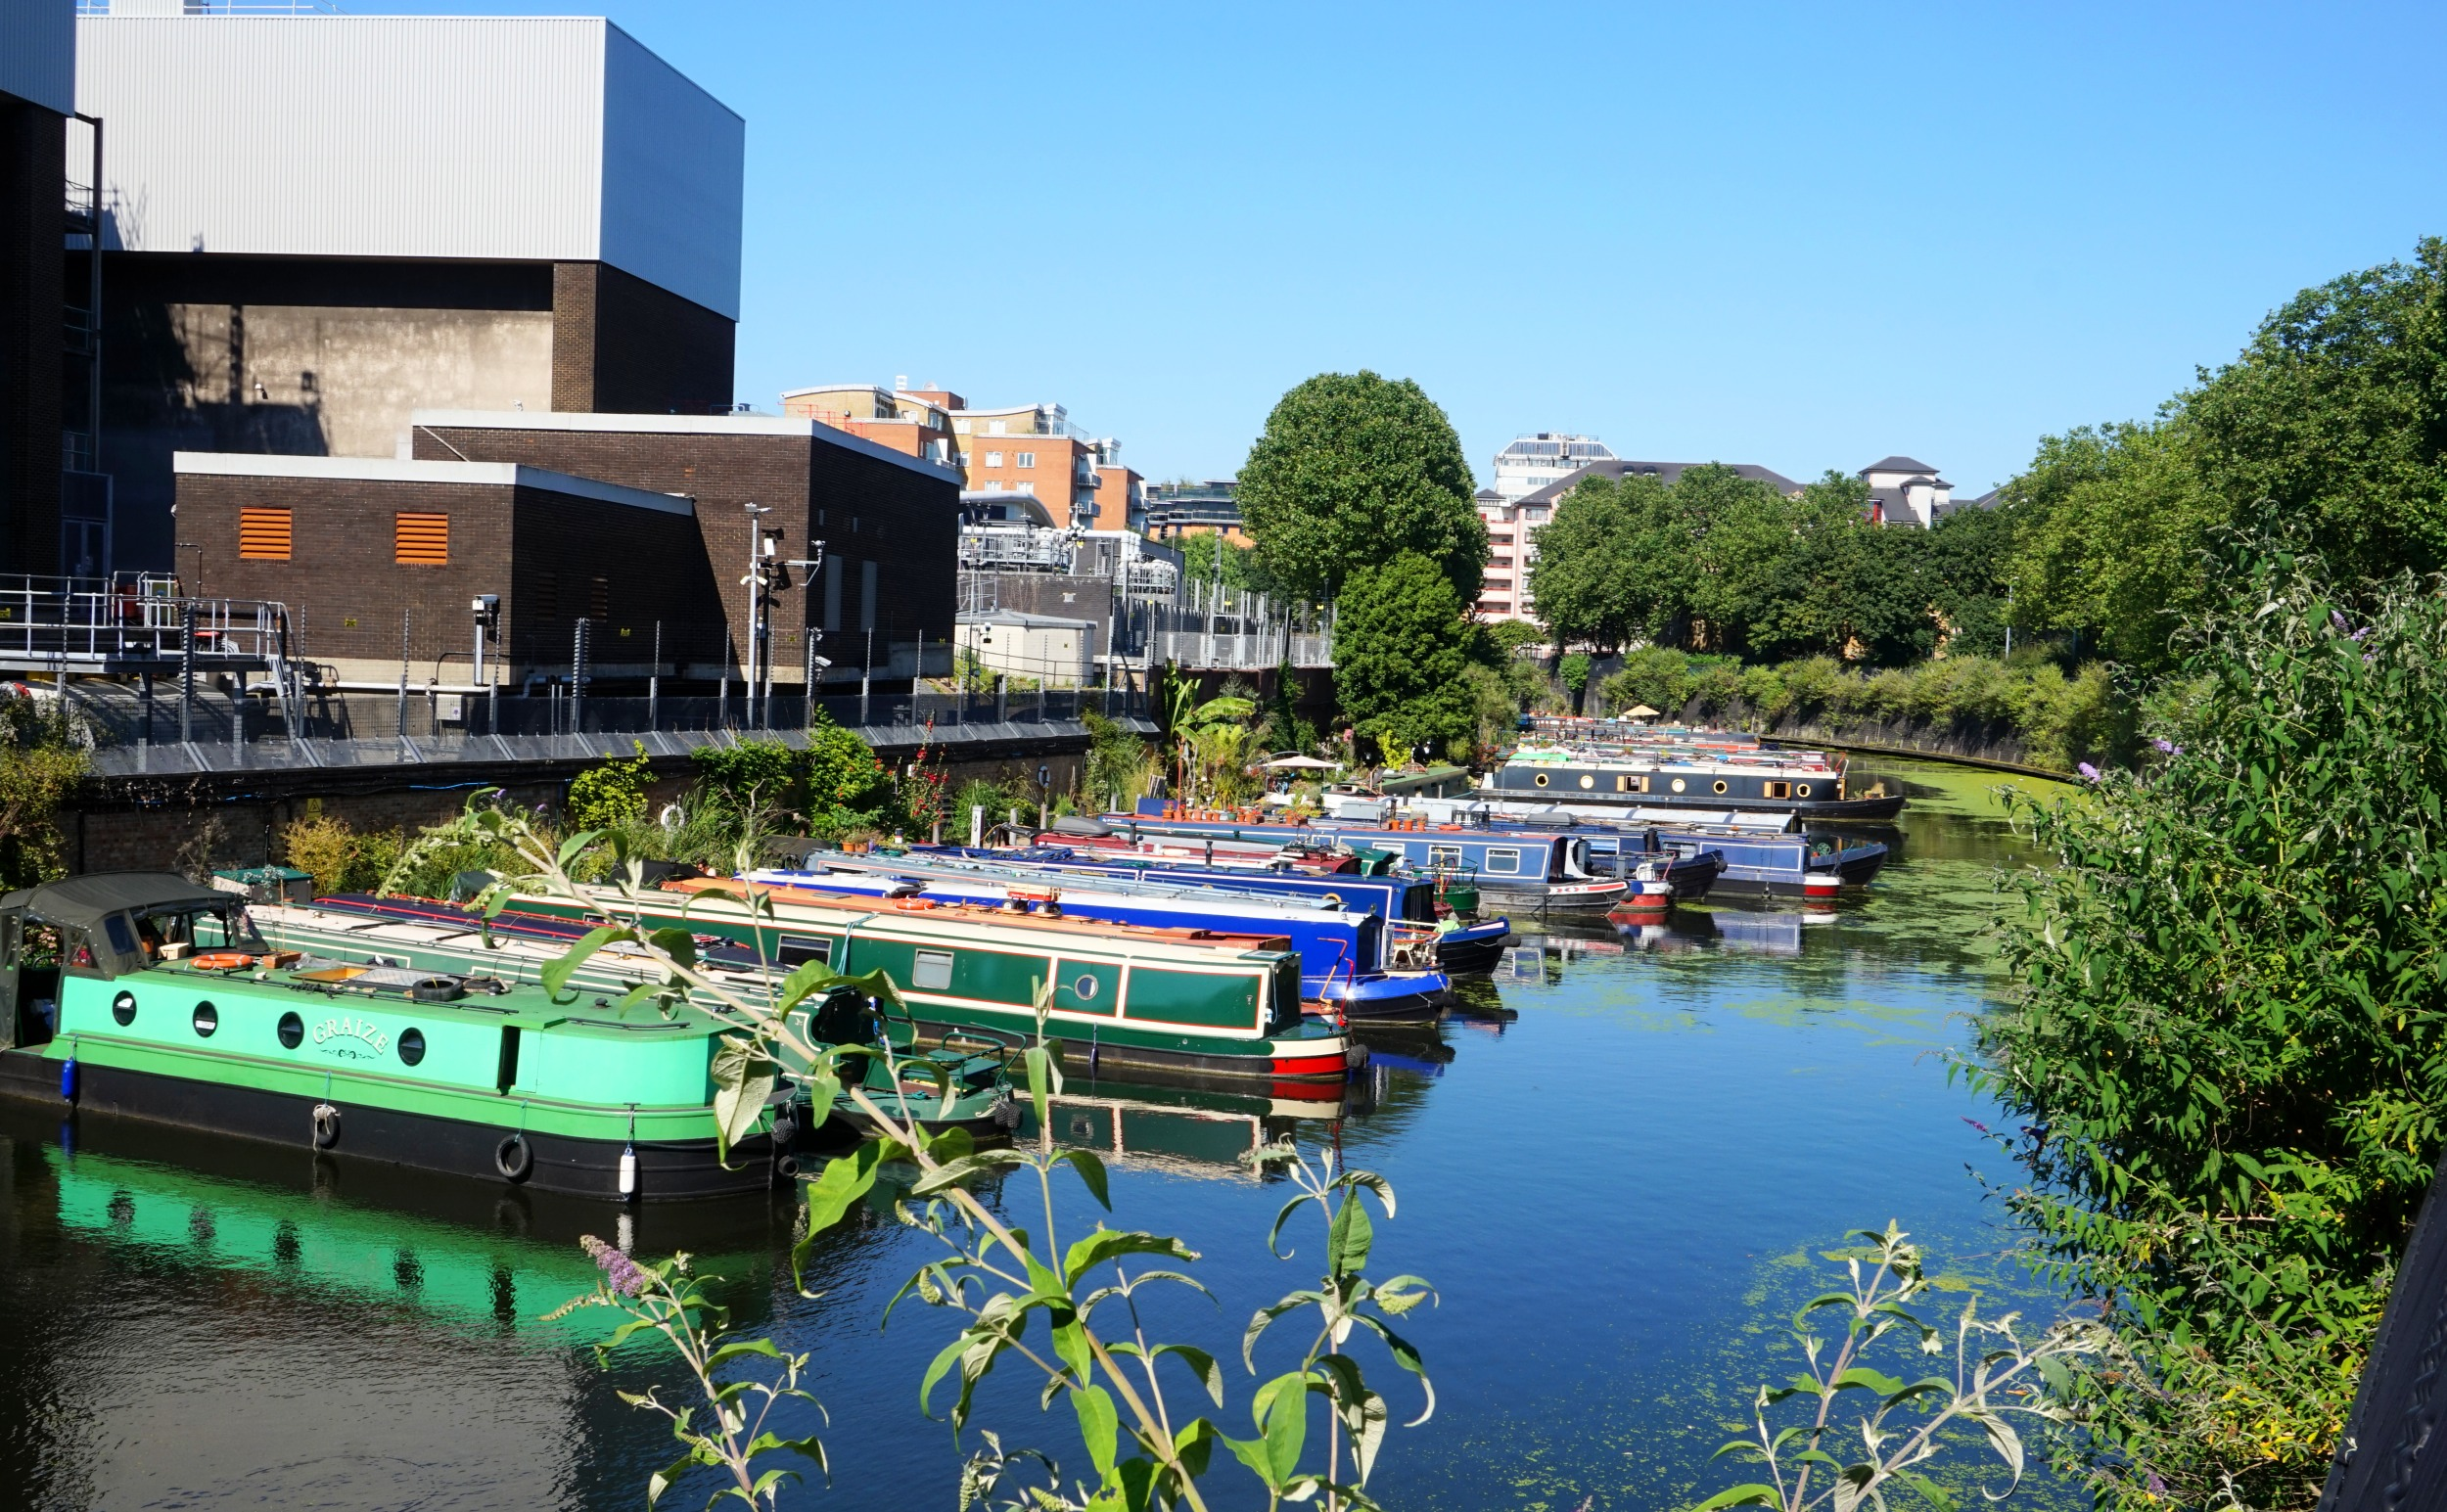 Regents-Canal-37